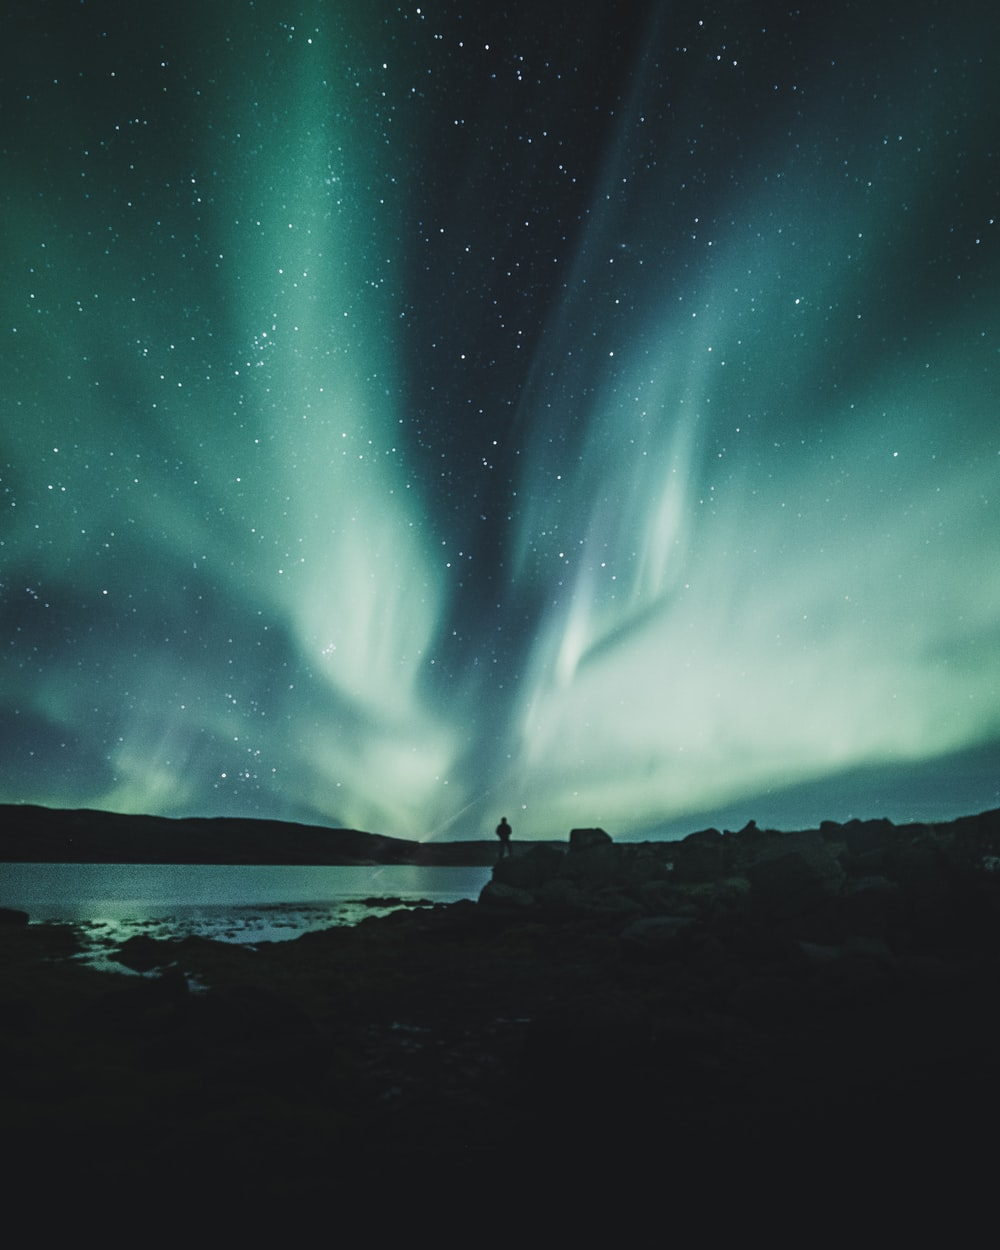 person standing near body of water during aurora northern sky